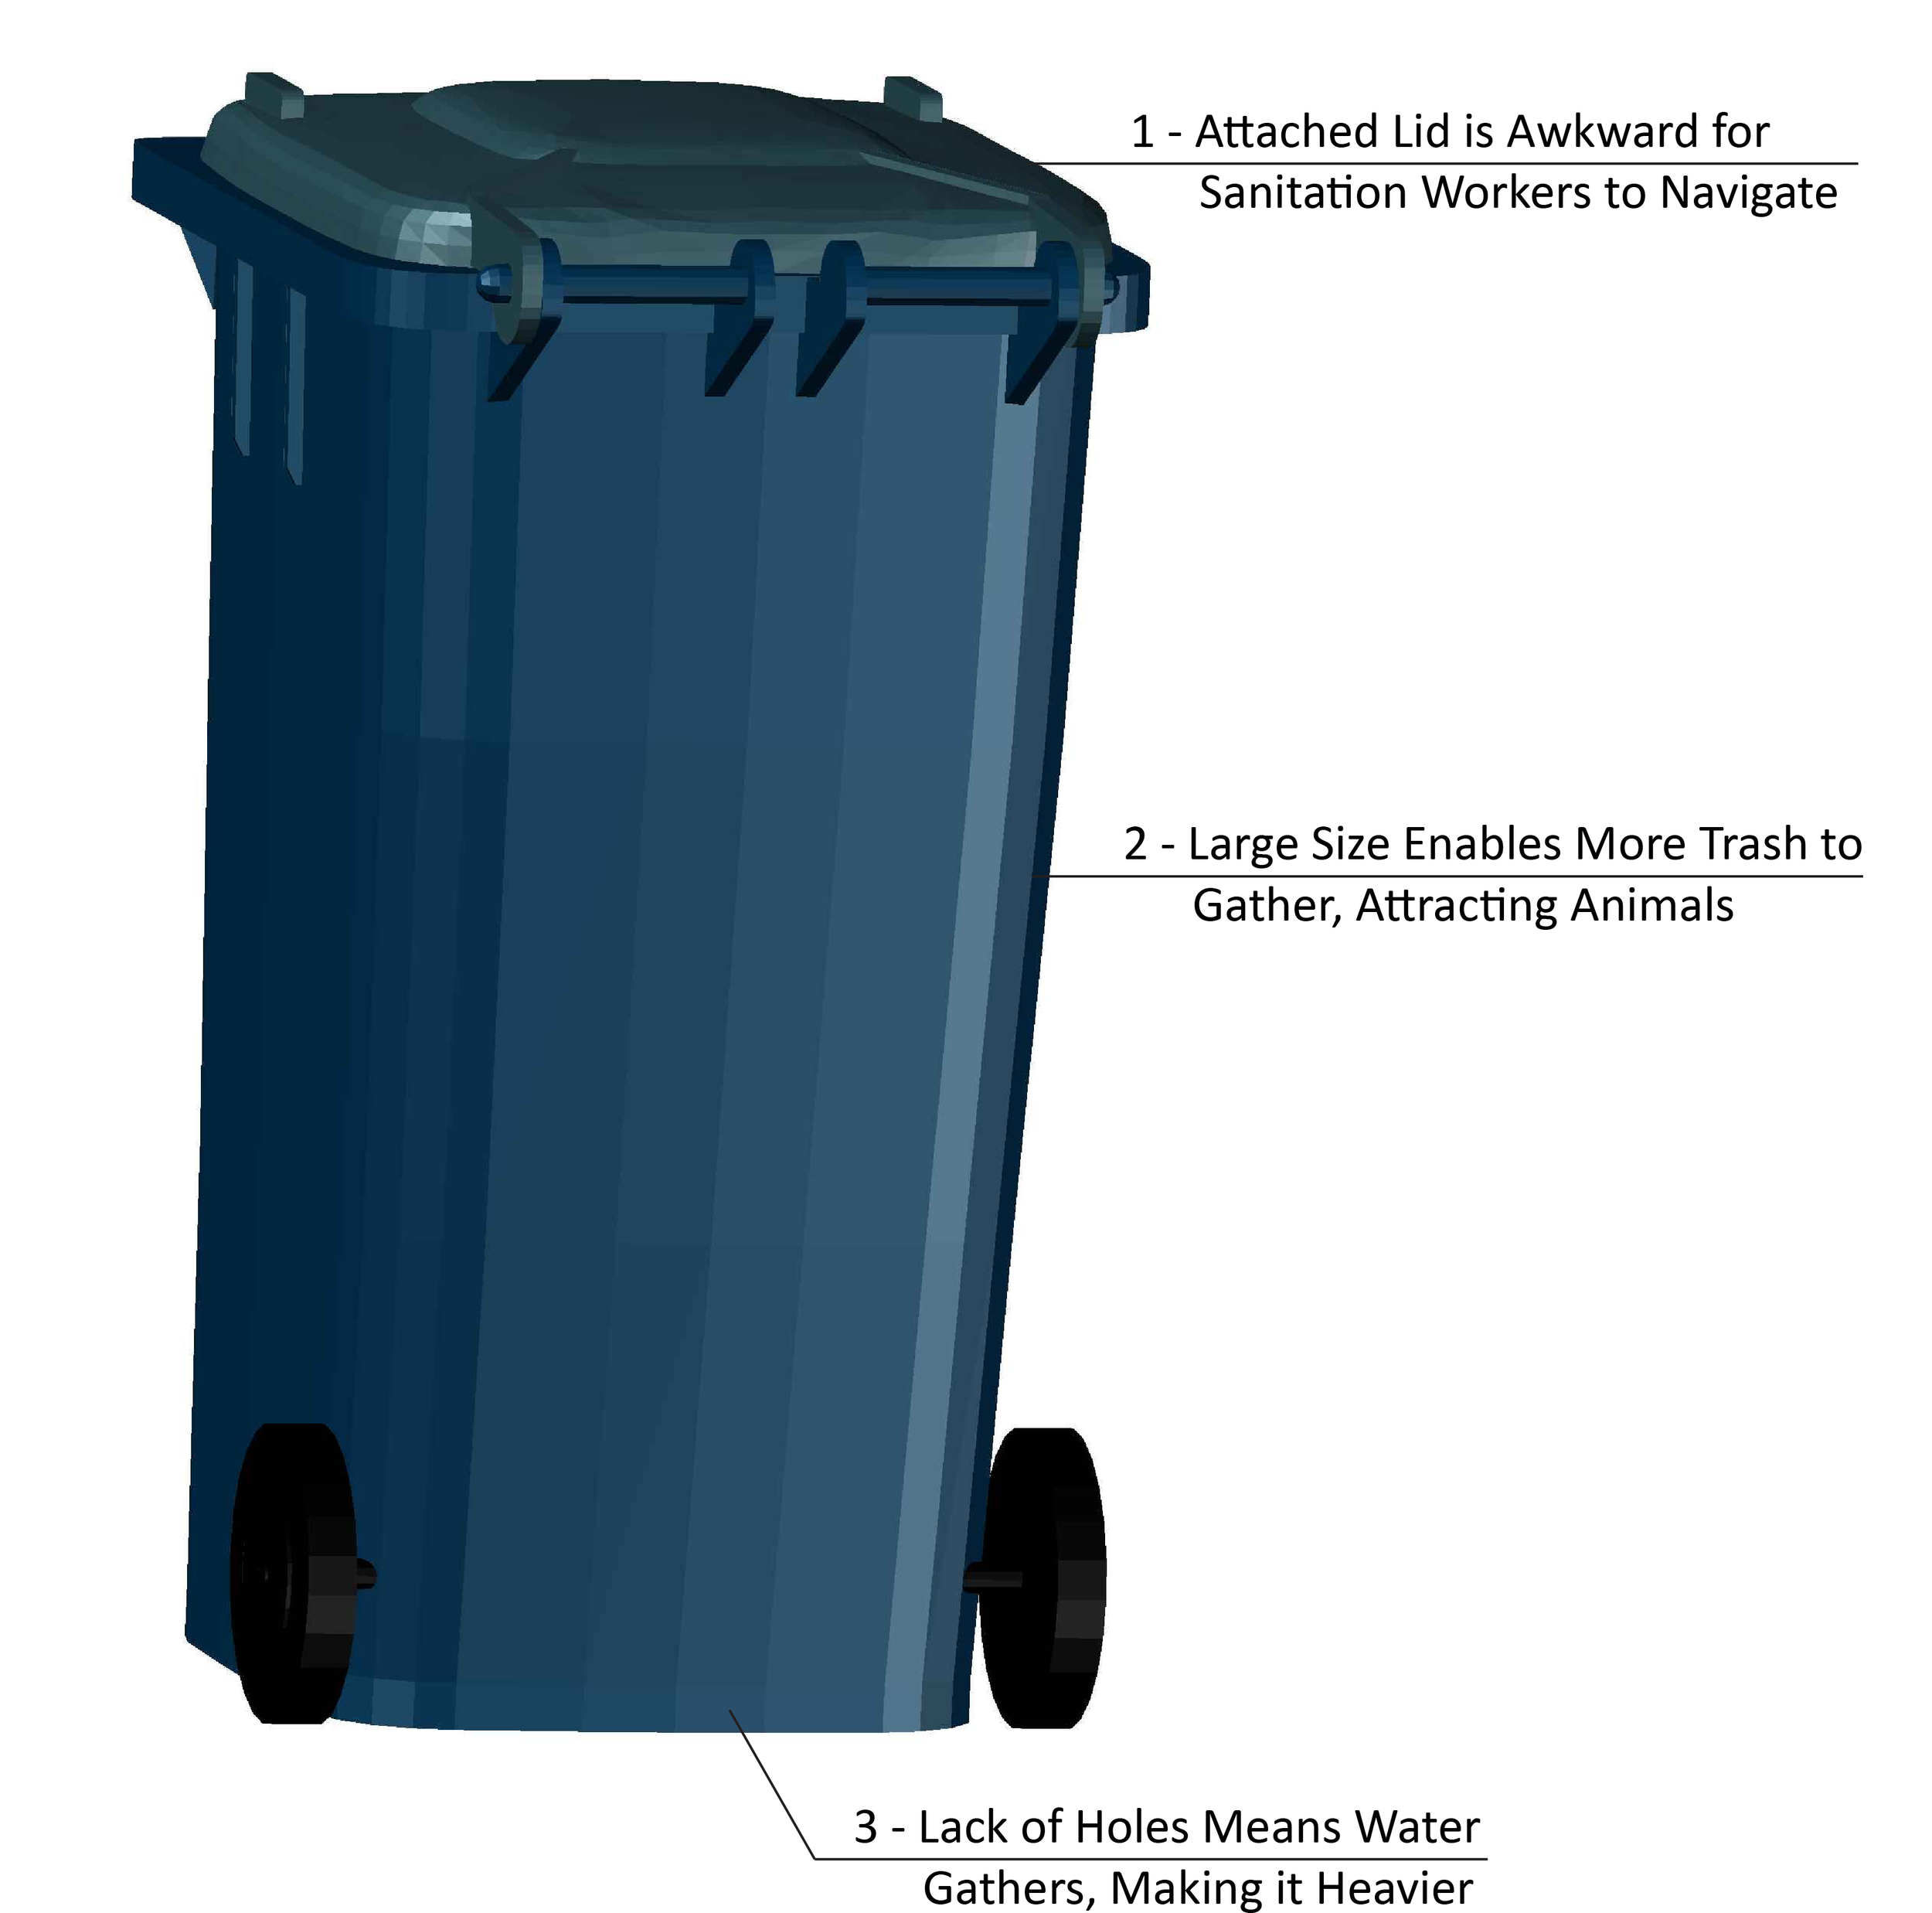 Challenges that sanitation workers deal with when working with existing trash cans.